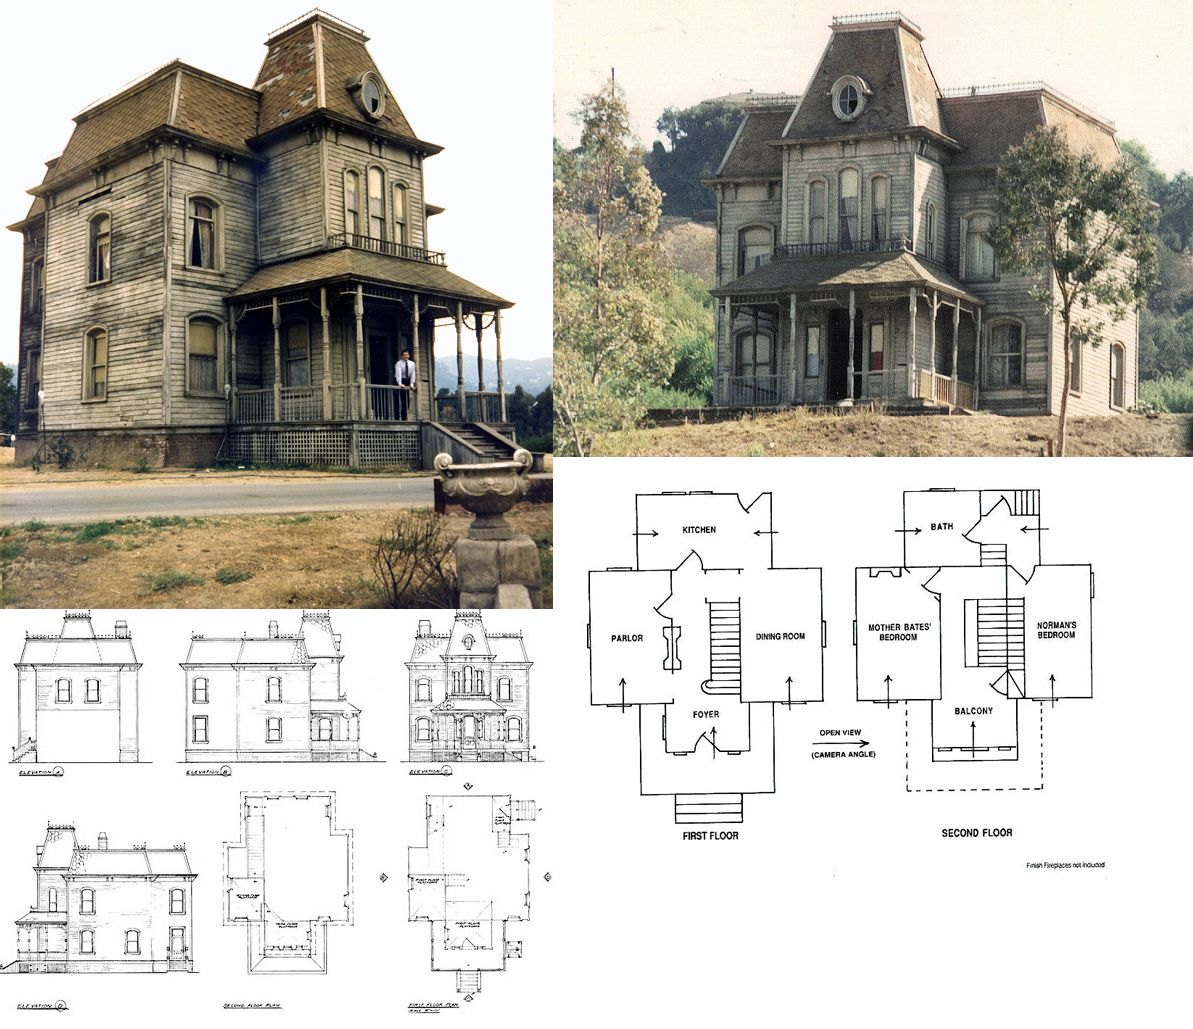 Pin By Dustin Hedrick On Victorian Style Houses Victorian House Plans Vintage House Plans Facade House